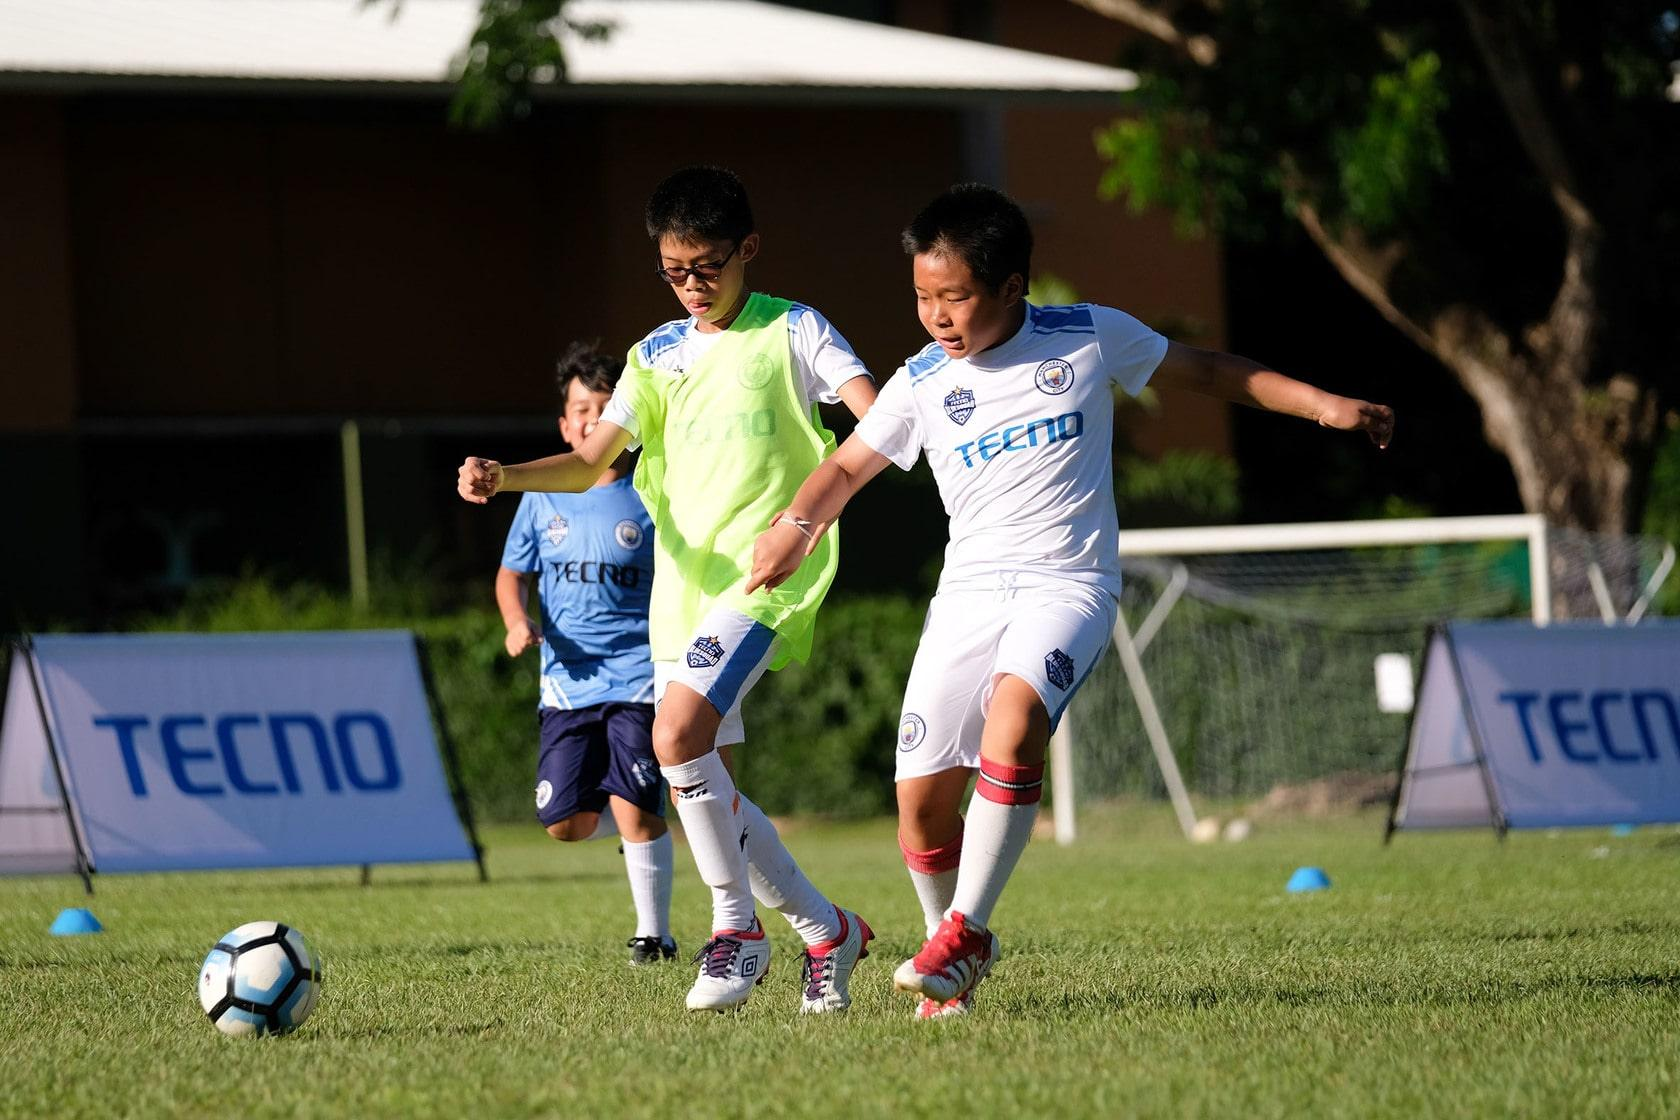 TECNO Mobile and Manchester City Football Club developing Thai youth football talent | The Thaiger